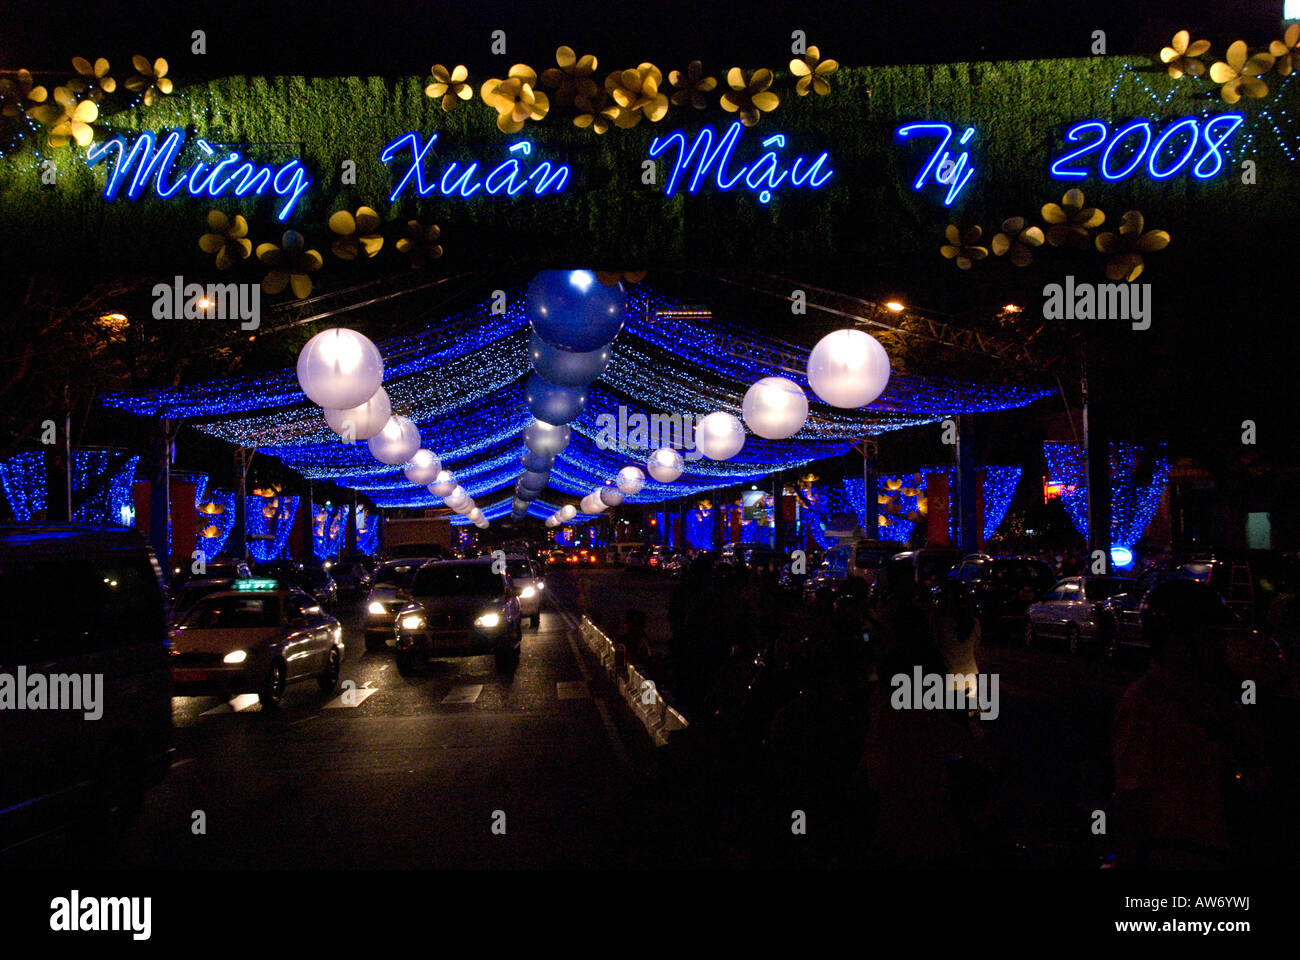 Cars and taxis drive under a canopy of lights during the Tet Lunar New Year celebrations in Ho Chi Minh City Vietnam 2008  sc 1 st  Alamy & Cars and taxis drive under a canopy of lights during the Tet Lunar ...